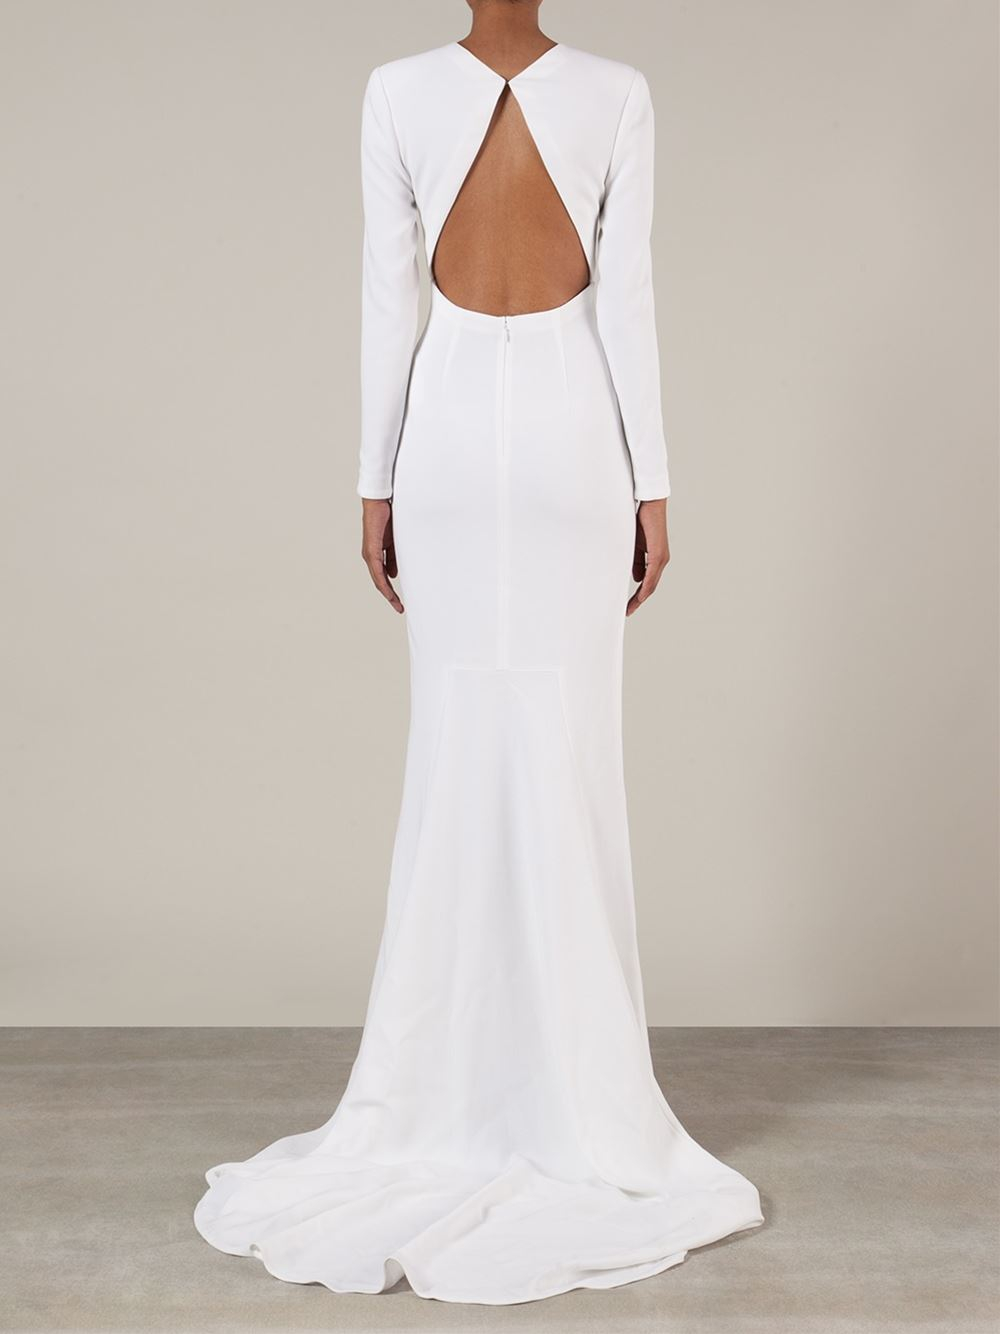 Lyst - Stella Mccartney Bridal Gown in White